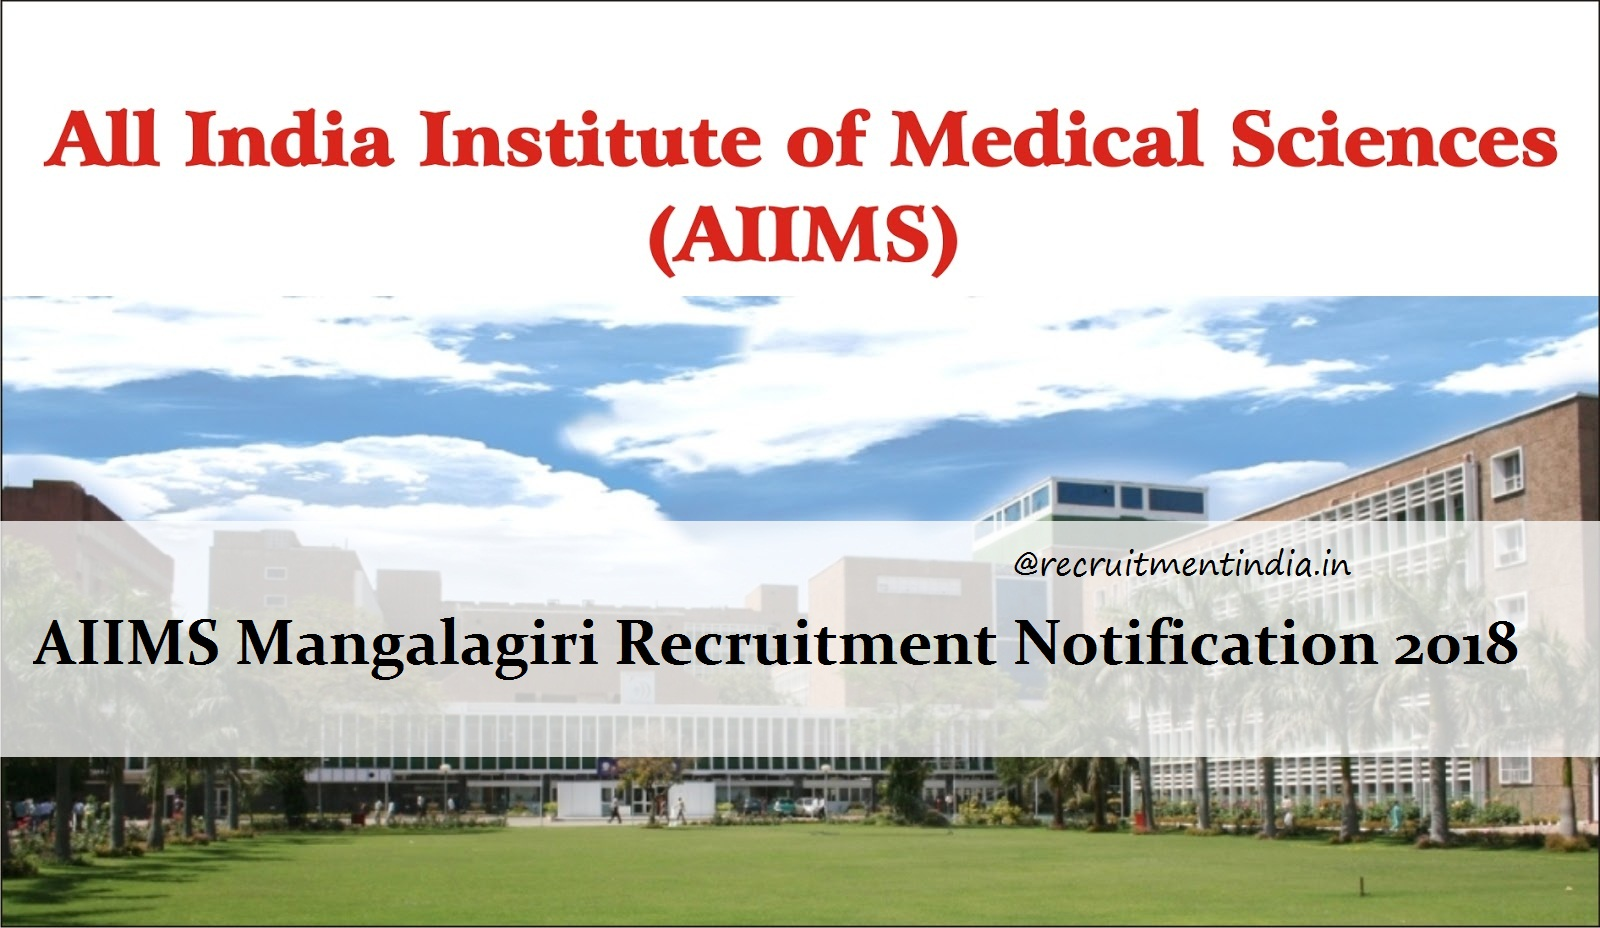 AIIMS Mangalagiri Recruitment 2018